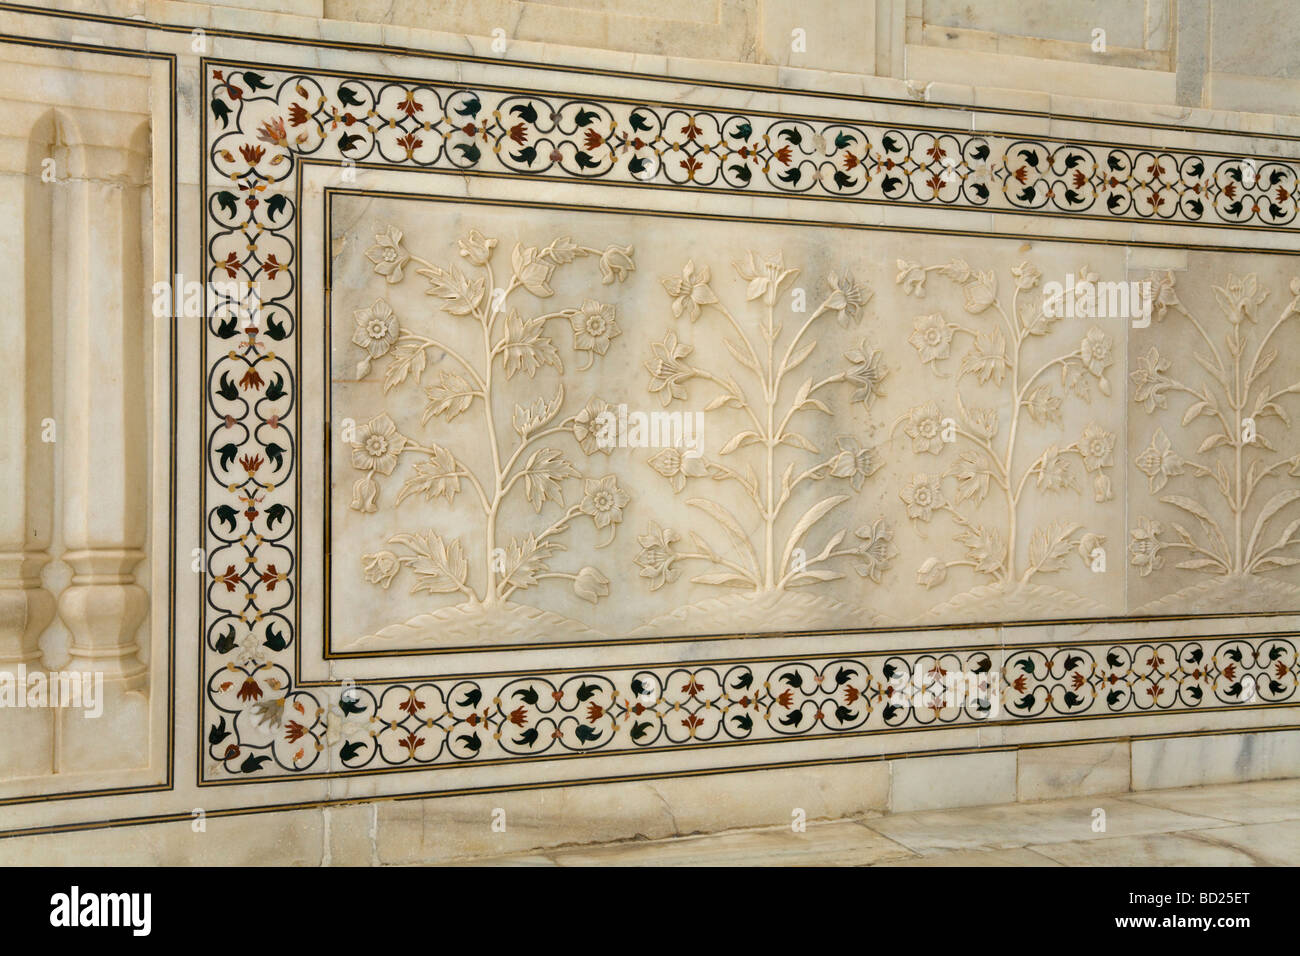 Stone Wall Of The Taj Mahal Mausoleum Made From Marble